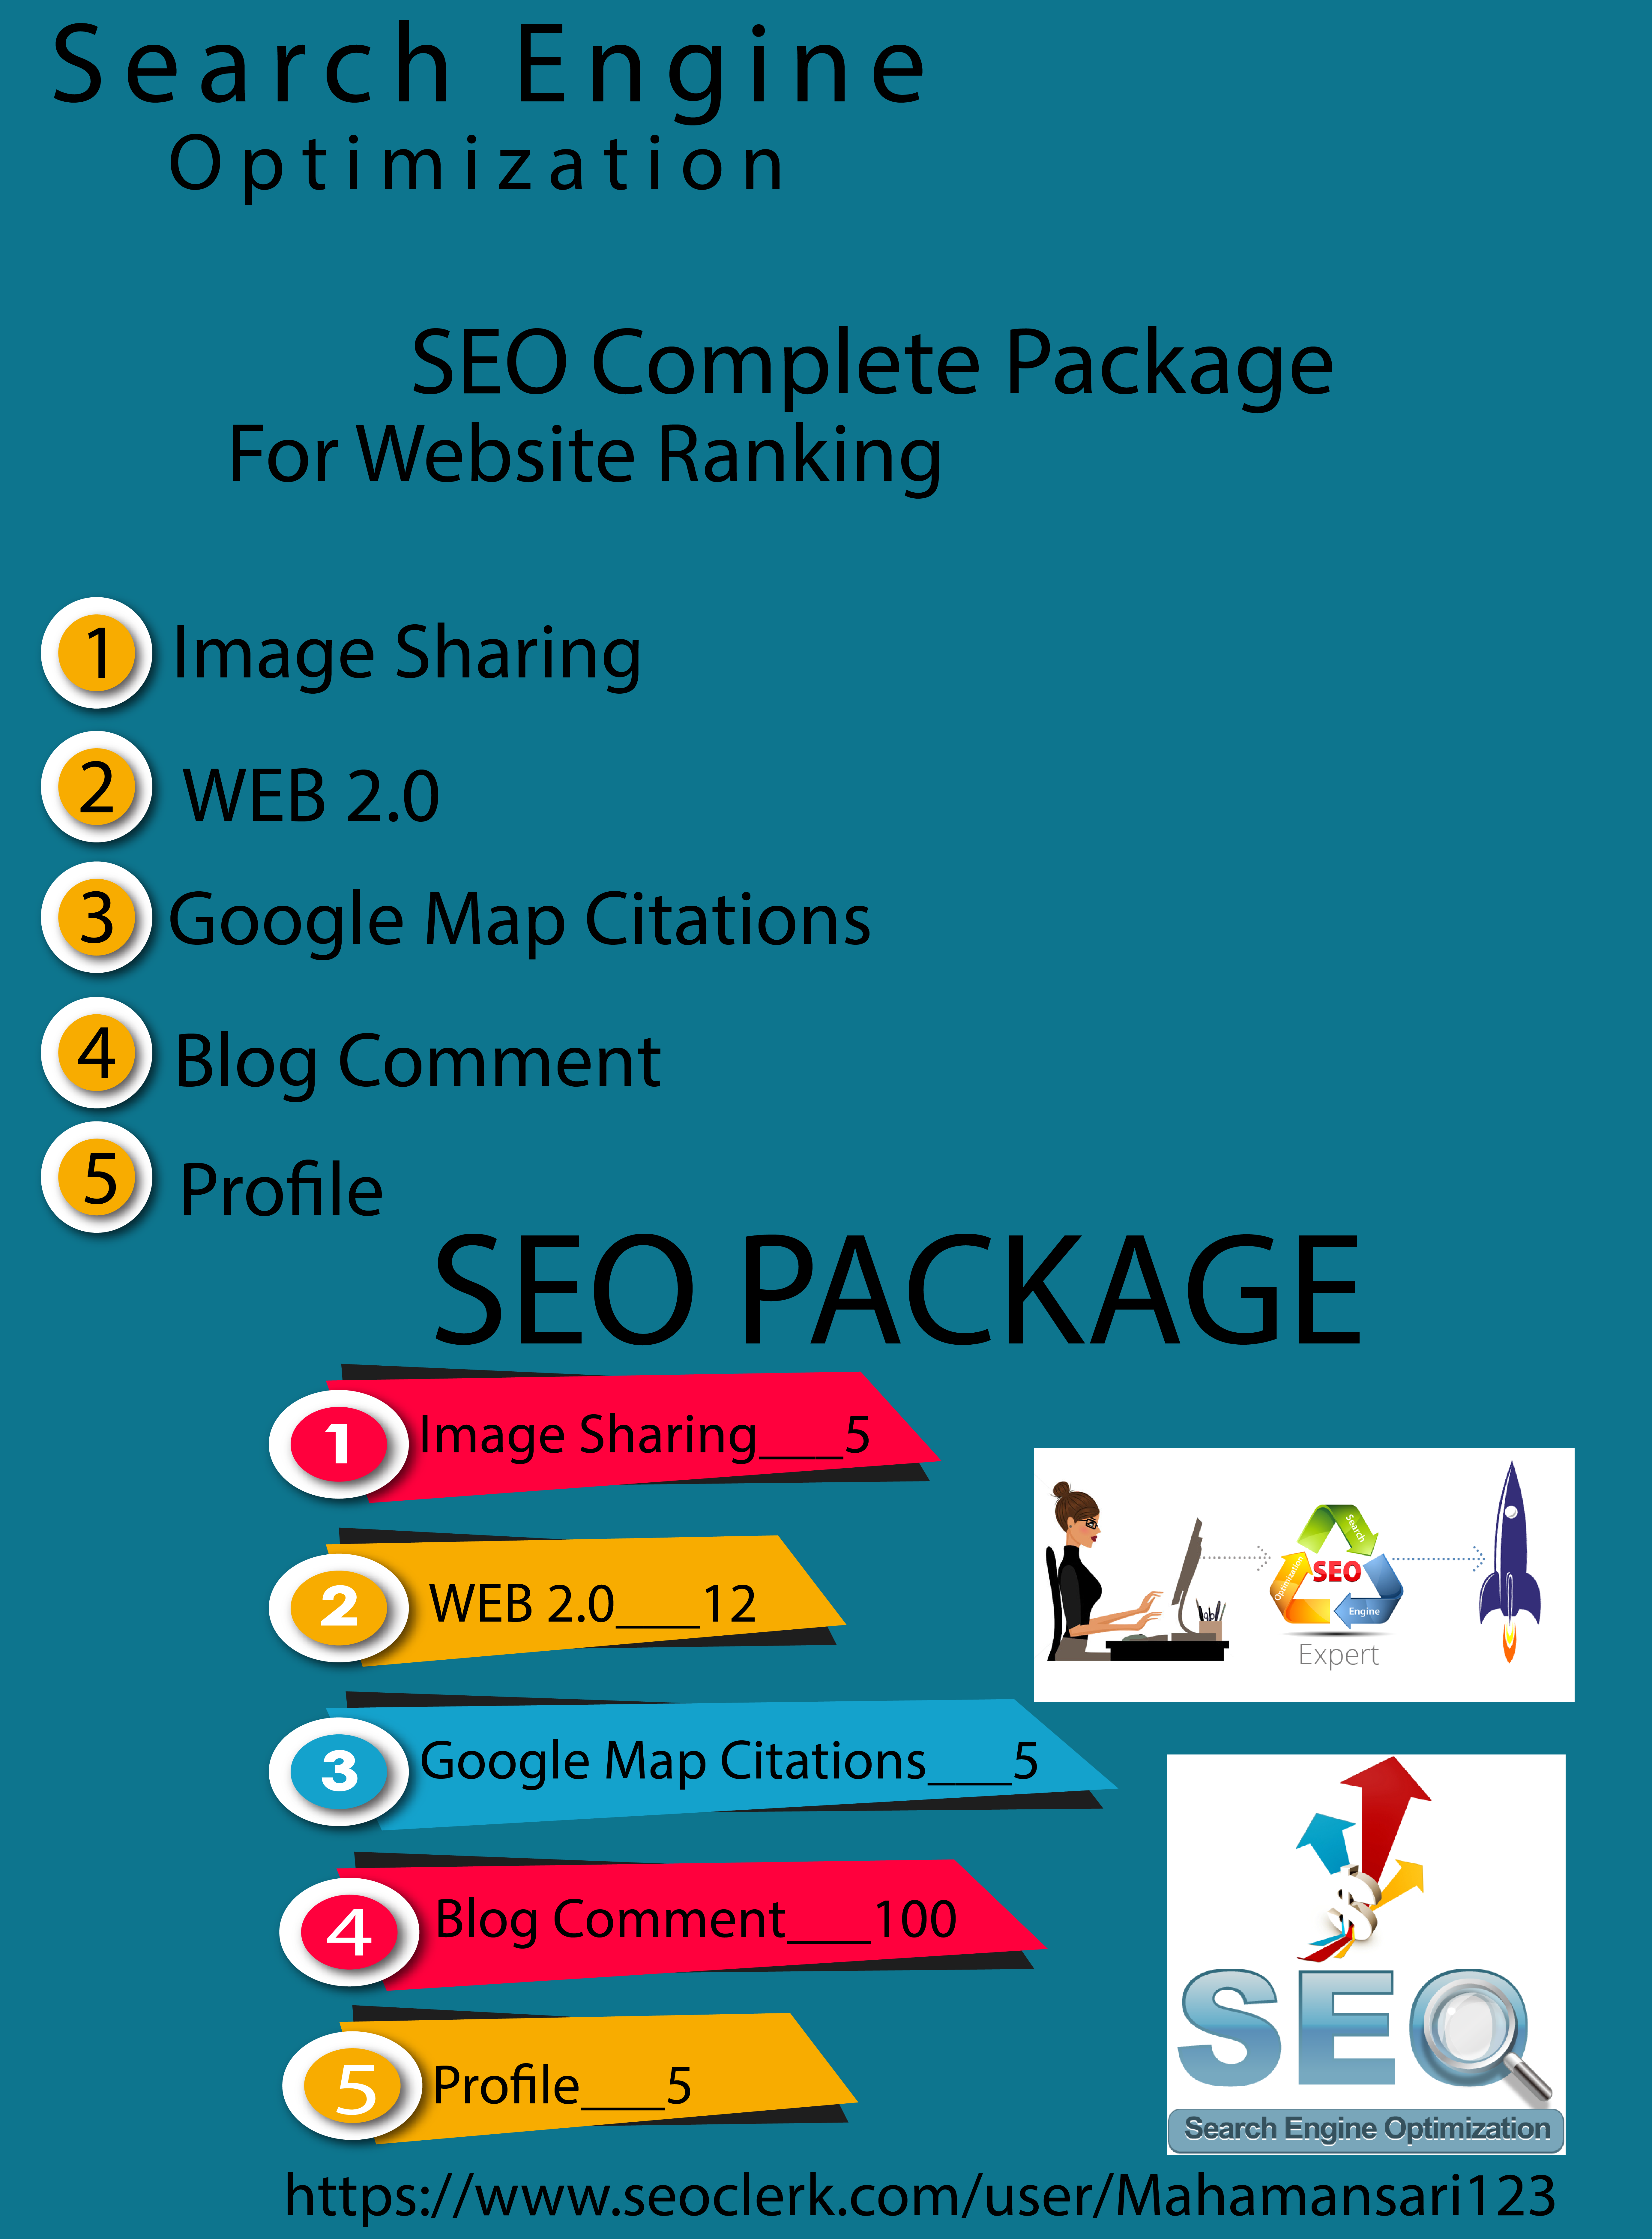 SEO Complete Package For Website Ranking